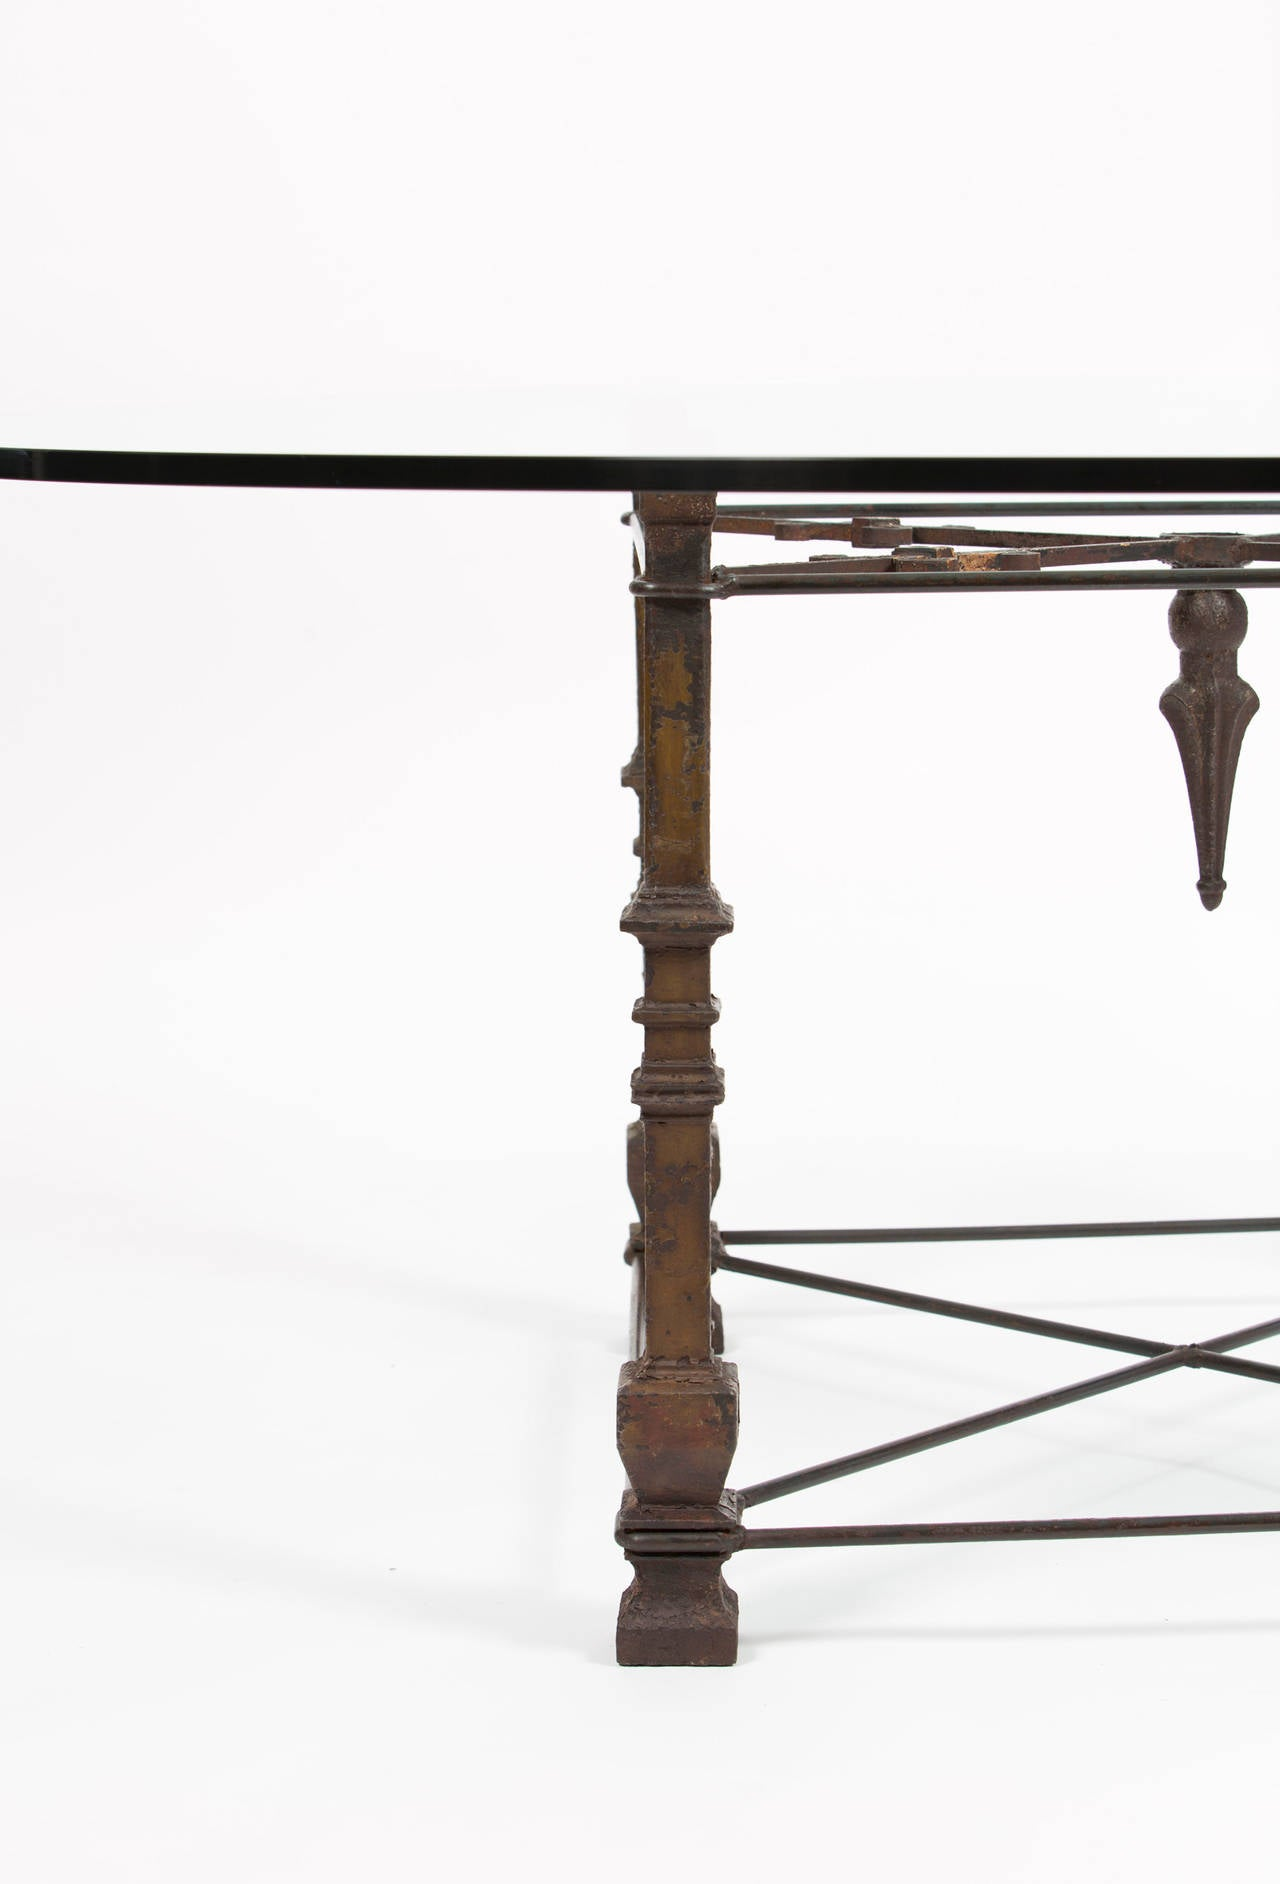 Antique Forged Iron Dining Table with Glass Top at 1stdibs : CT323roundglasstopantiqueirondiningroomtableil from www.1stdibs.com size 1280 x 1884 jpeg 75kB